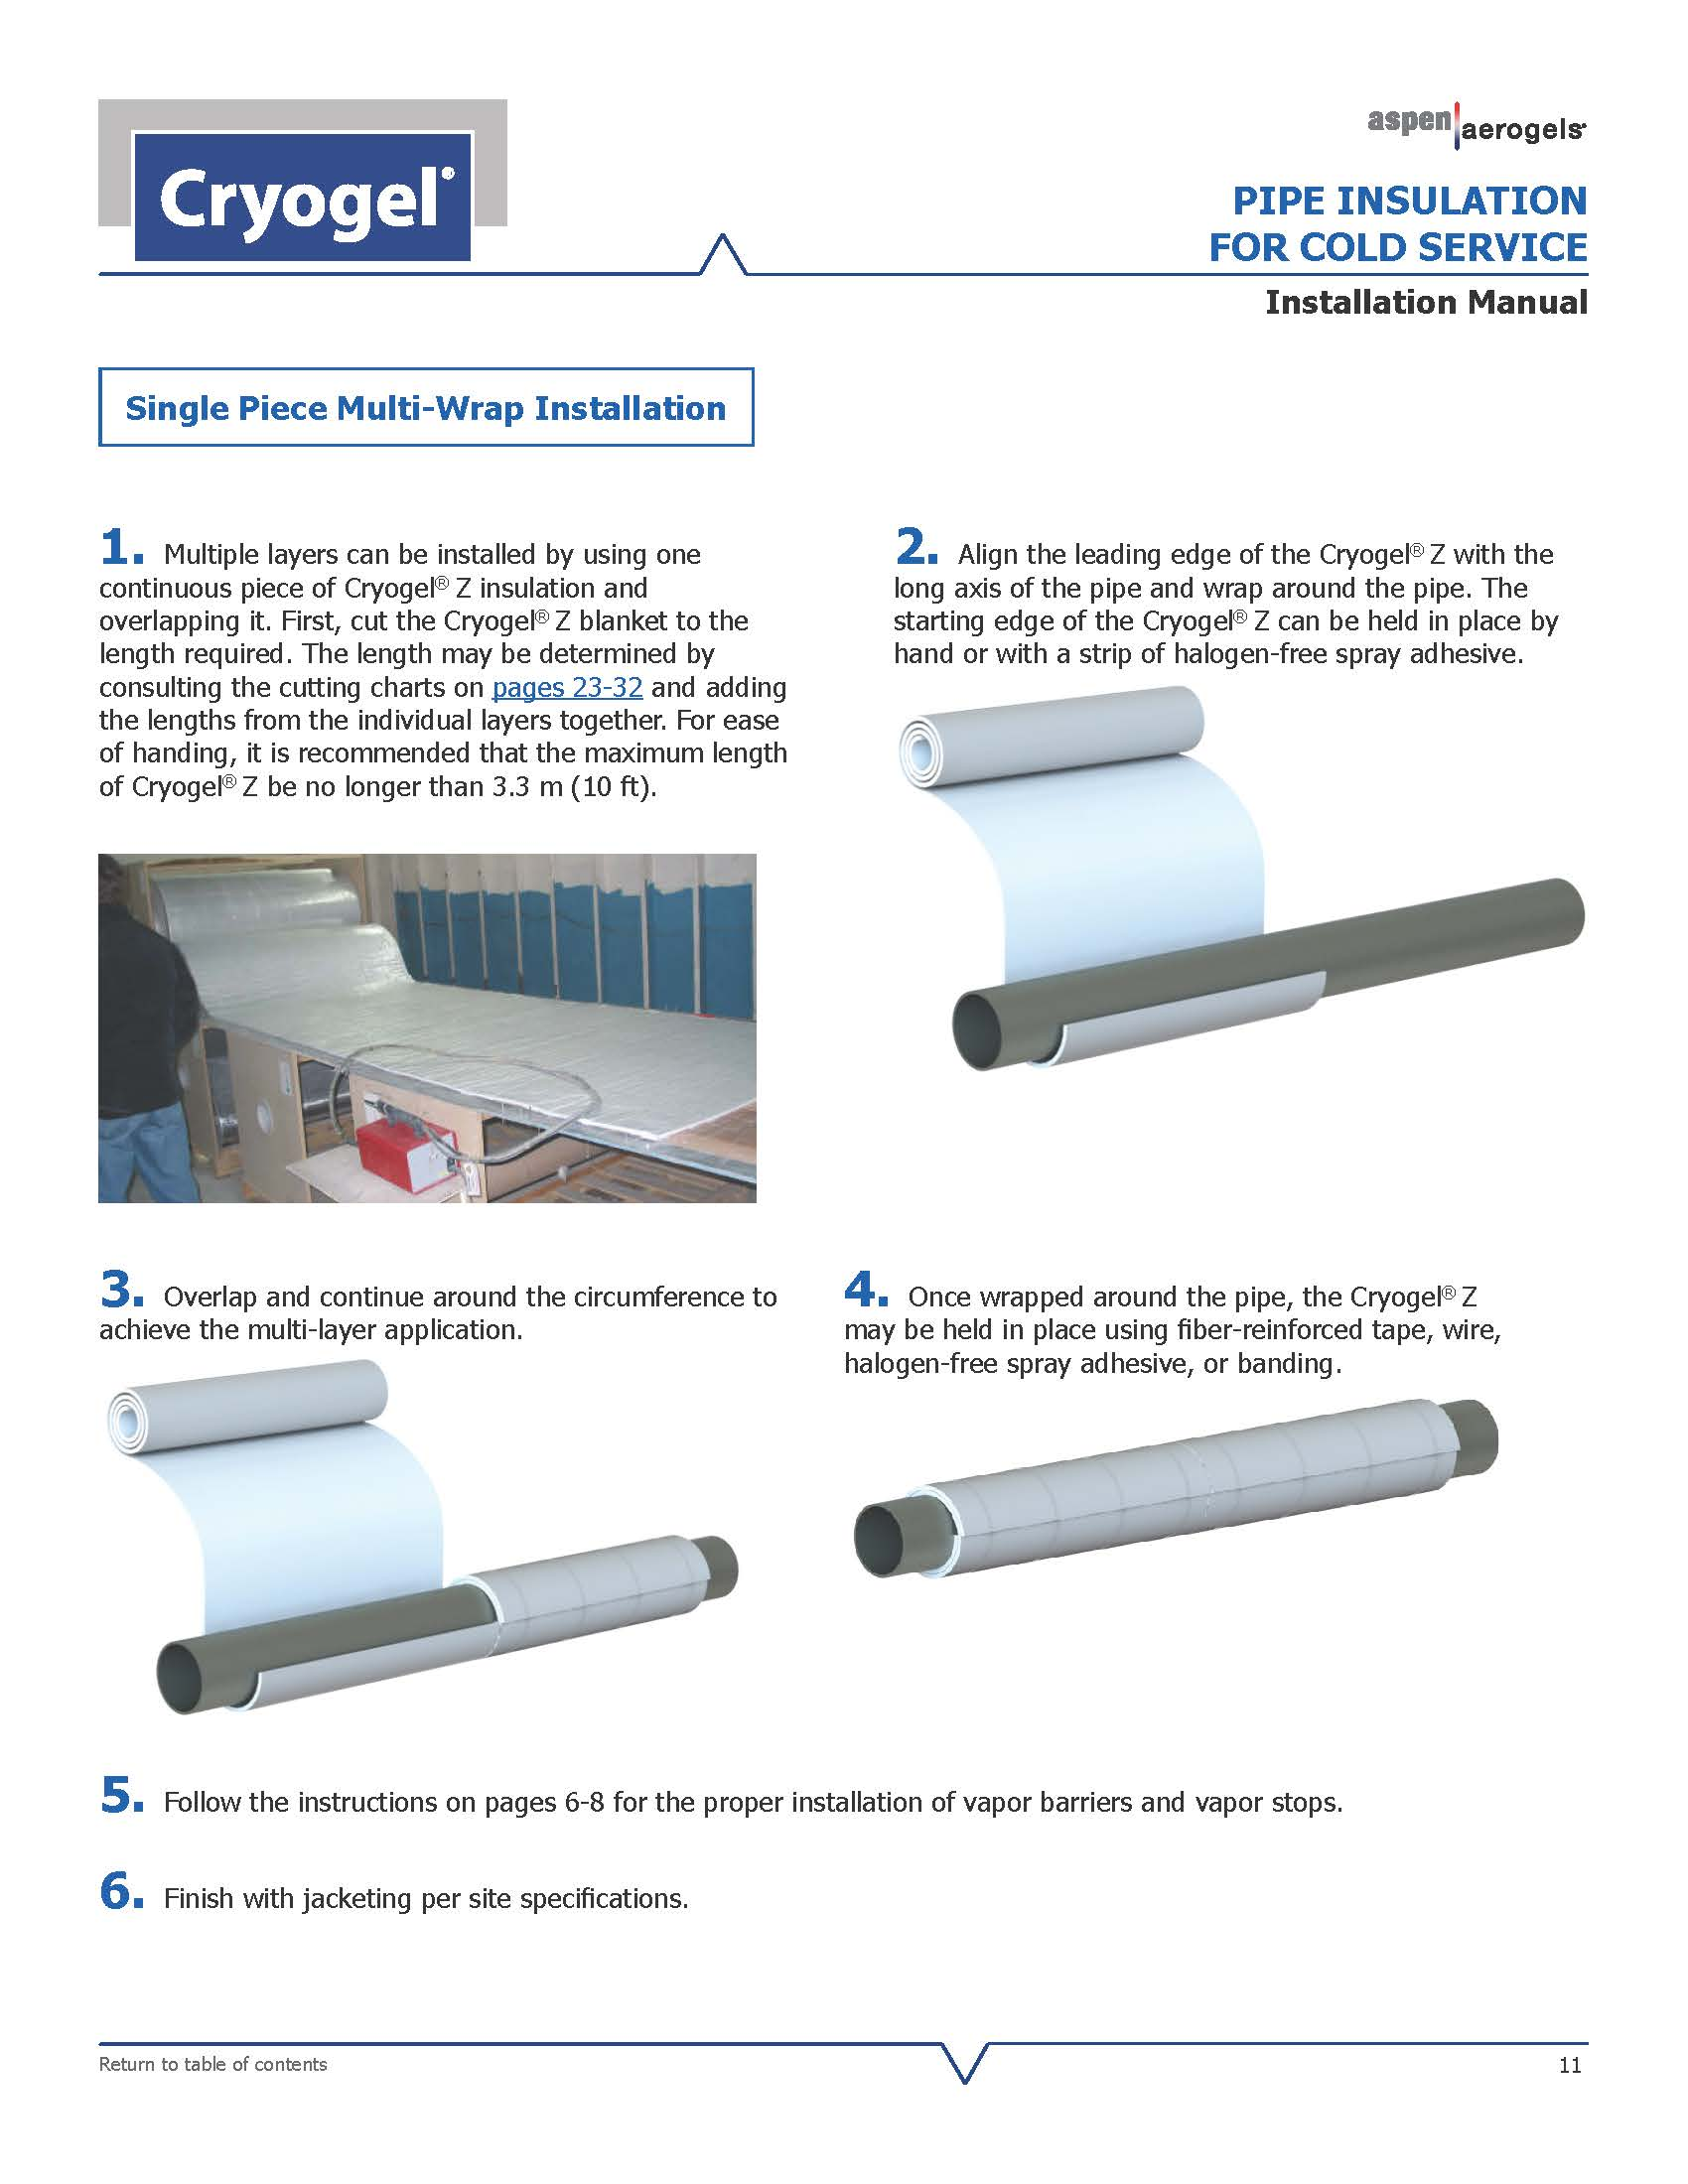 Cold-Service-Pipe-Install-Manual_Page_11.jpg